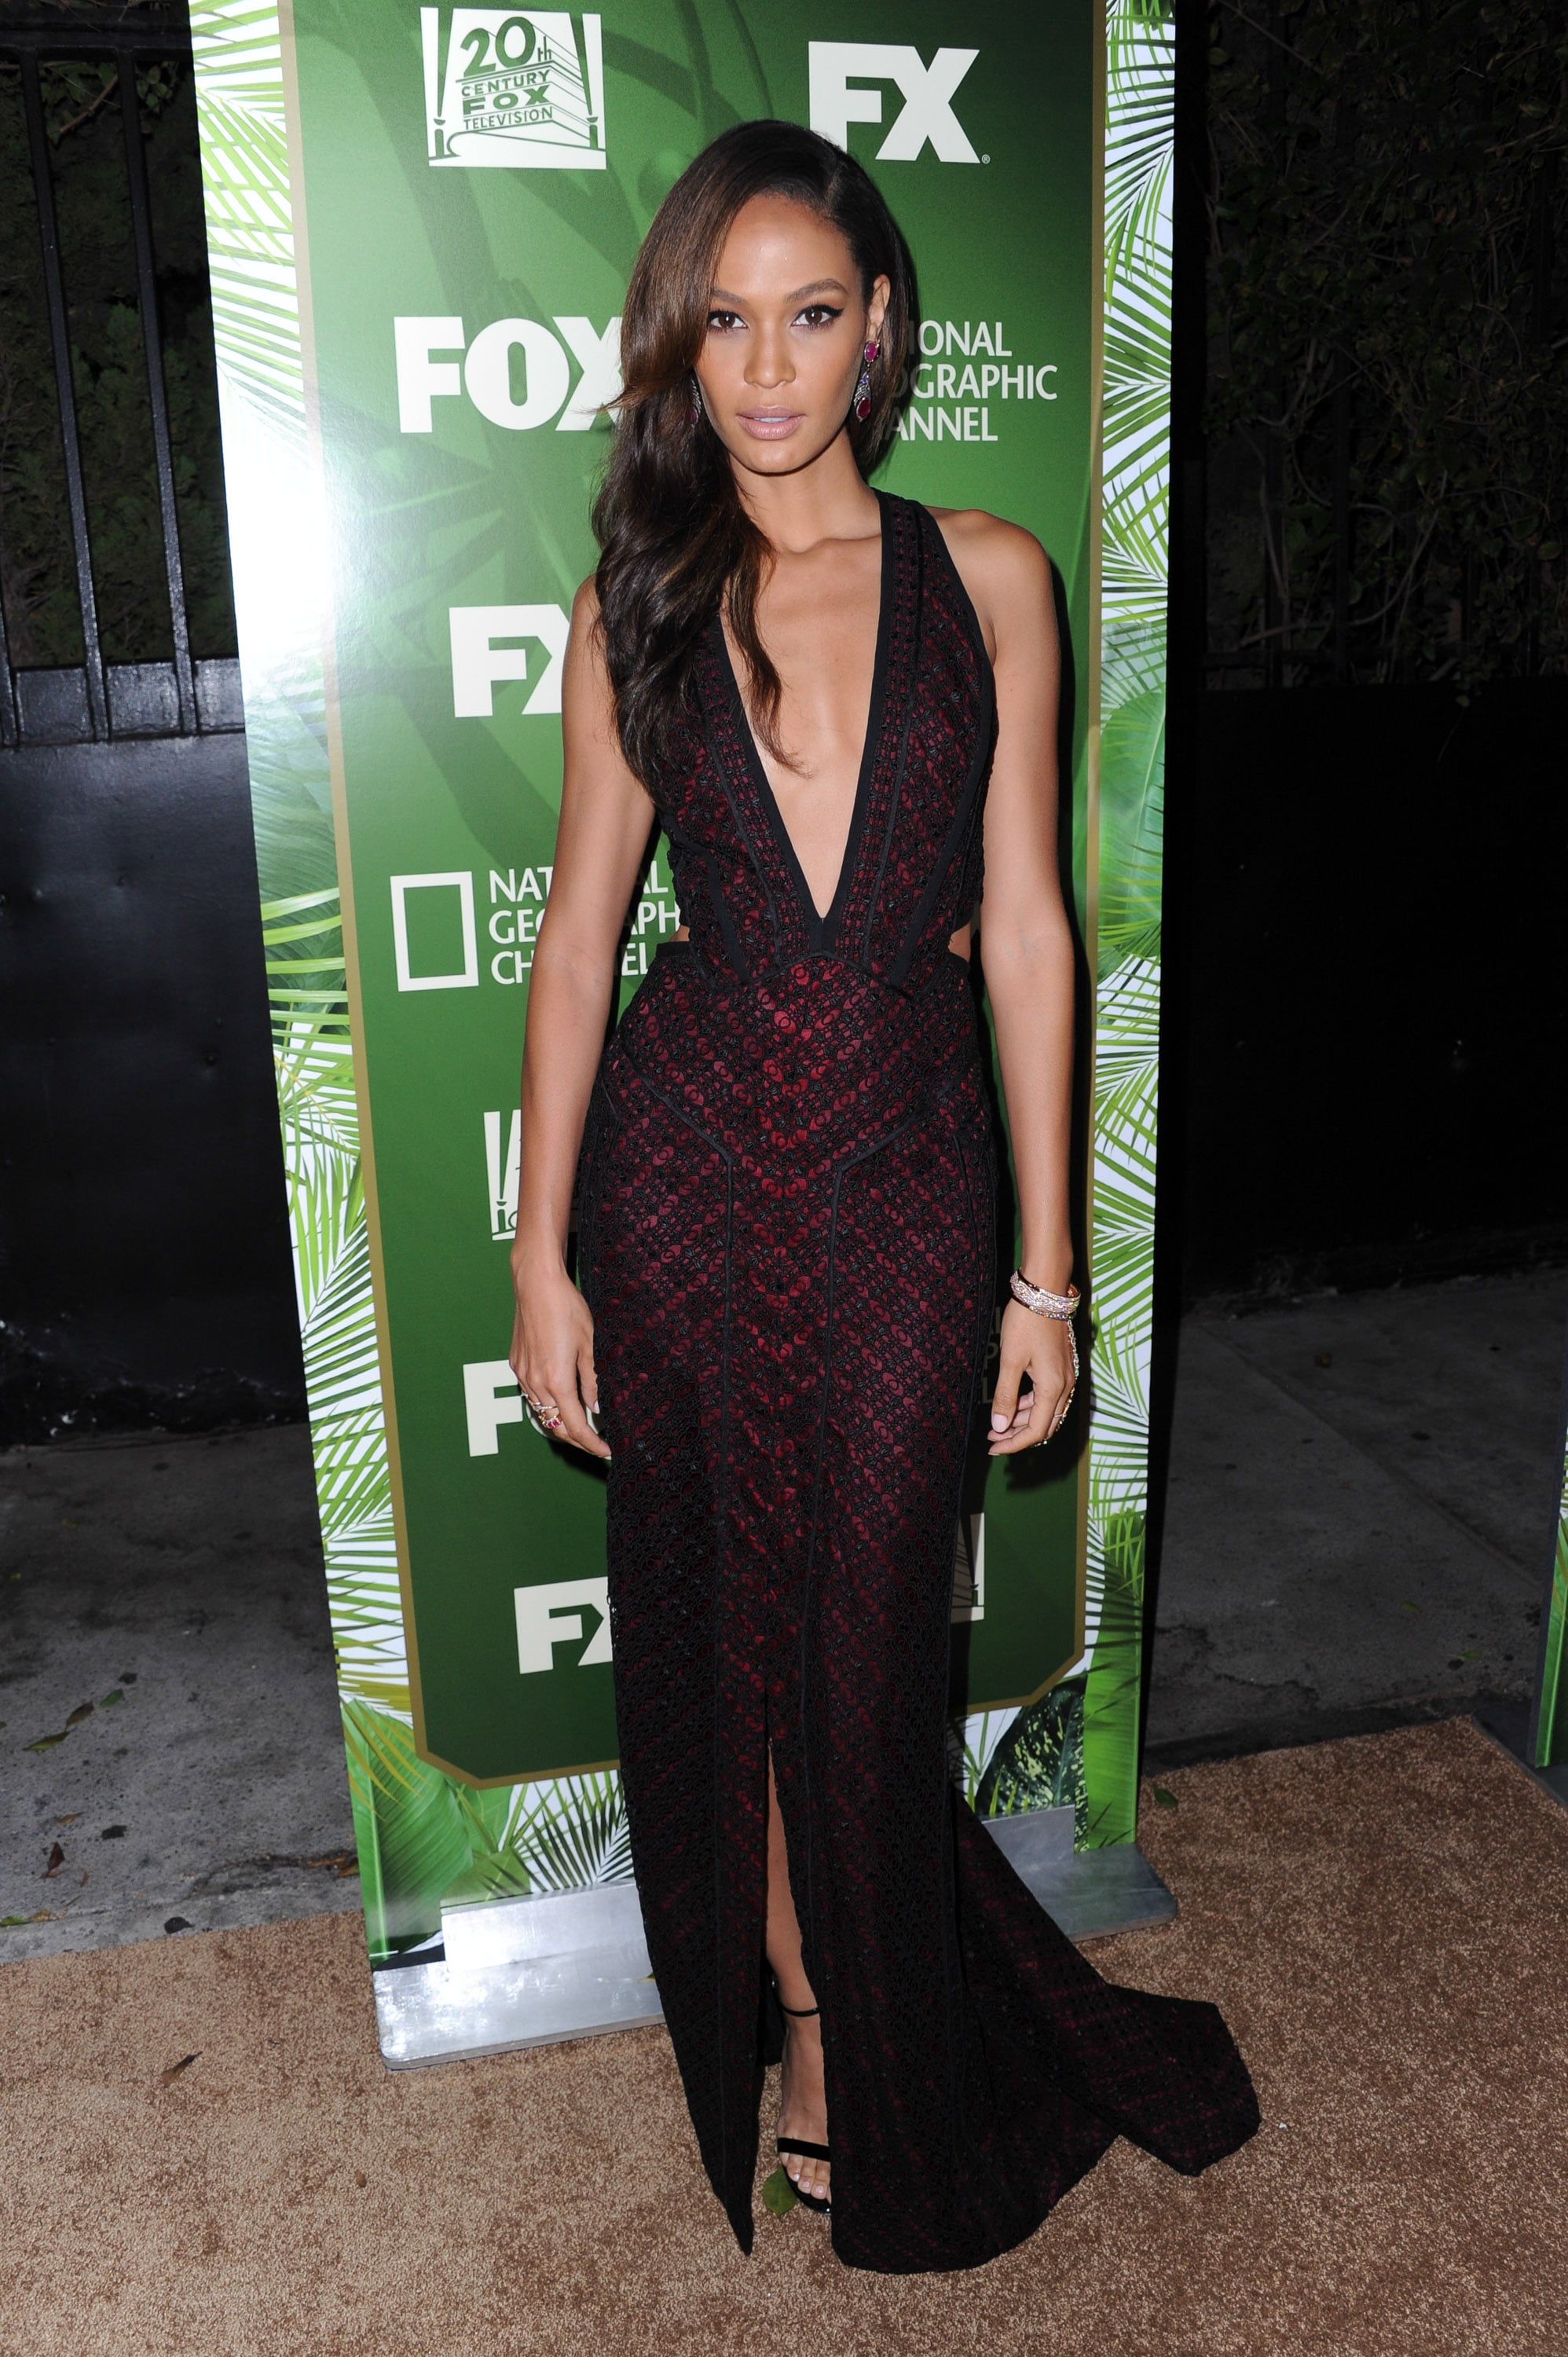 Joan Smalls at the Fox Emmys Afterparty